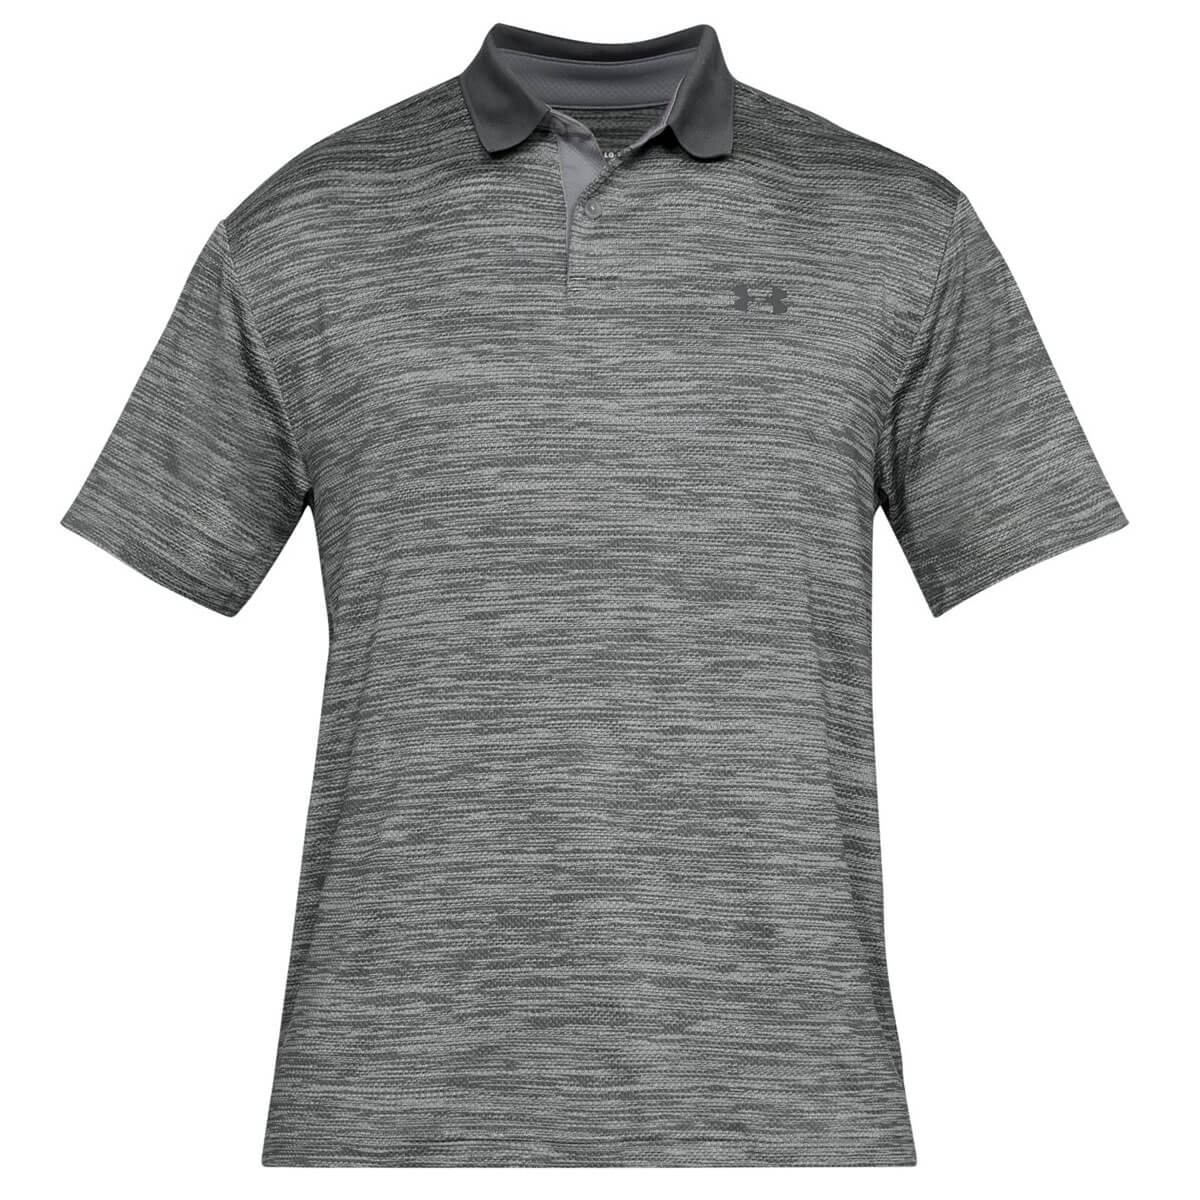 Under-Armour-Mens-2019-Performance-2-0-Stretch-Durable-Smooth-Golf-Polo-Shirt thumbnail 42